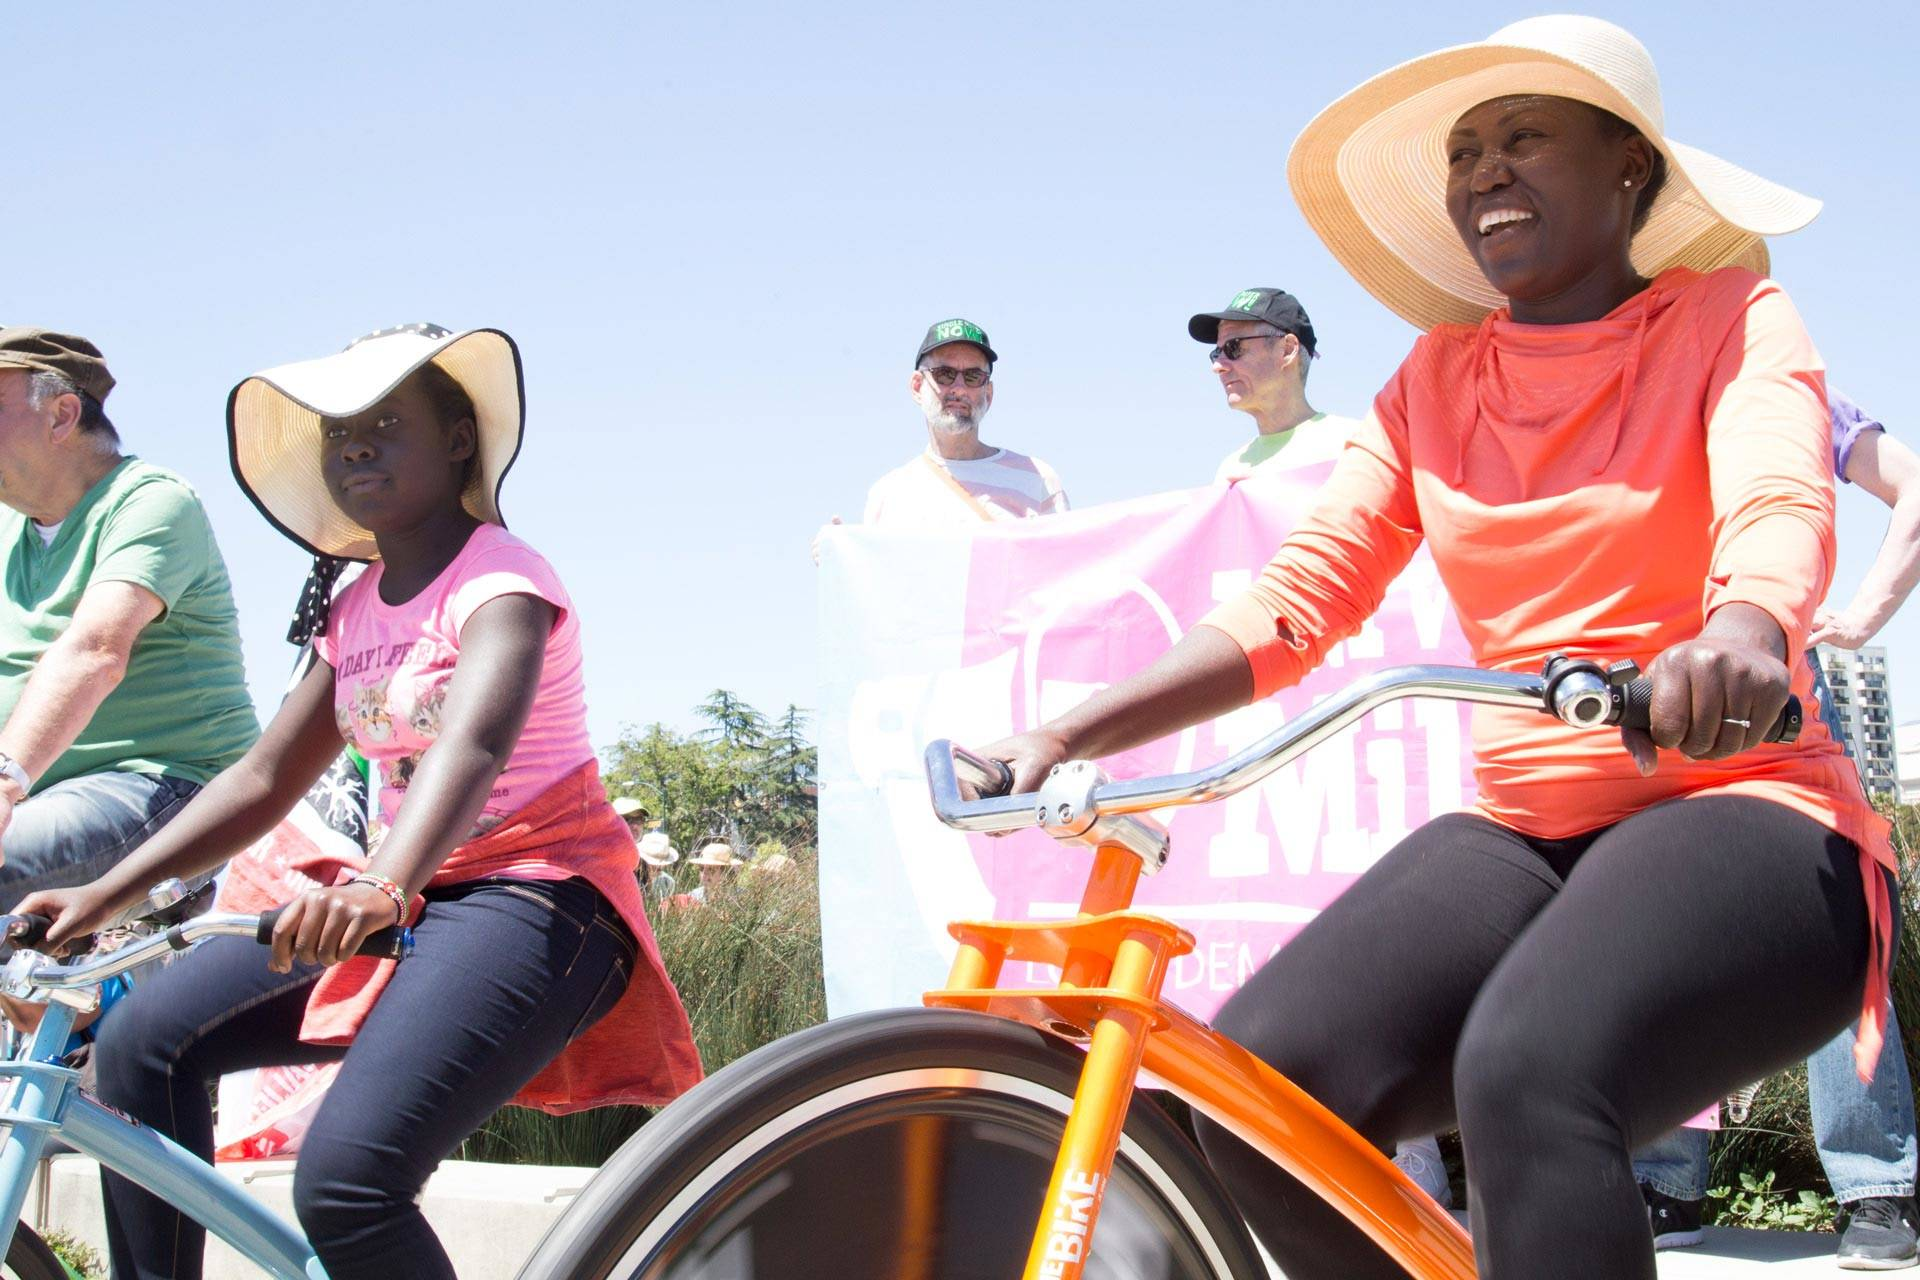 Edna Lehnert and her 10-year-old daughter generate pedal power at the People's Climate march in Oakland, April 29, 2017. Photo: Estefany Gonzalez